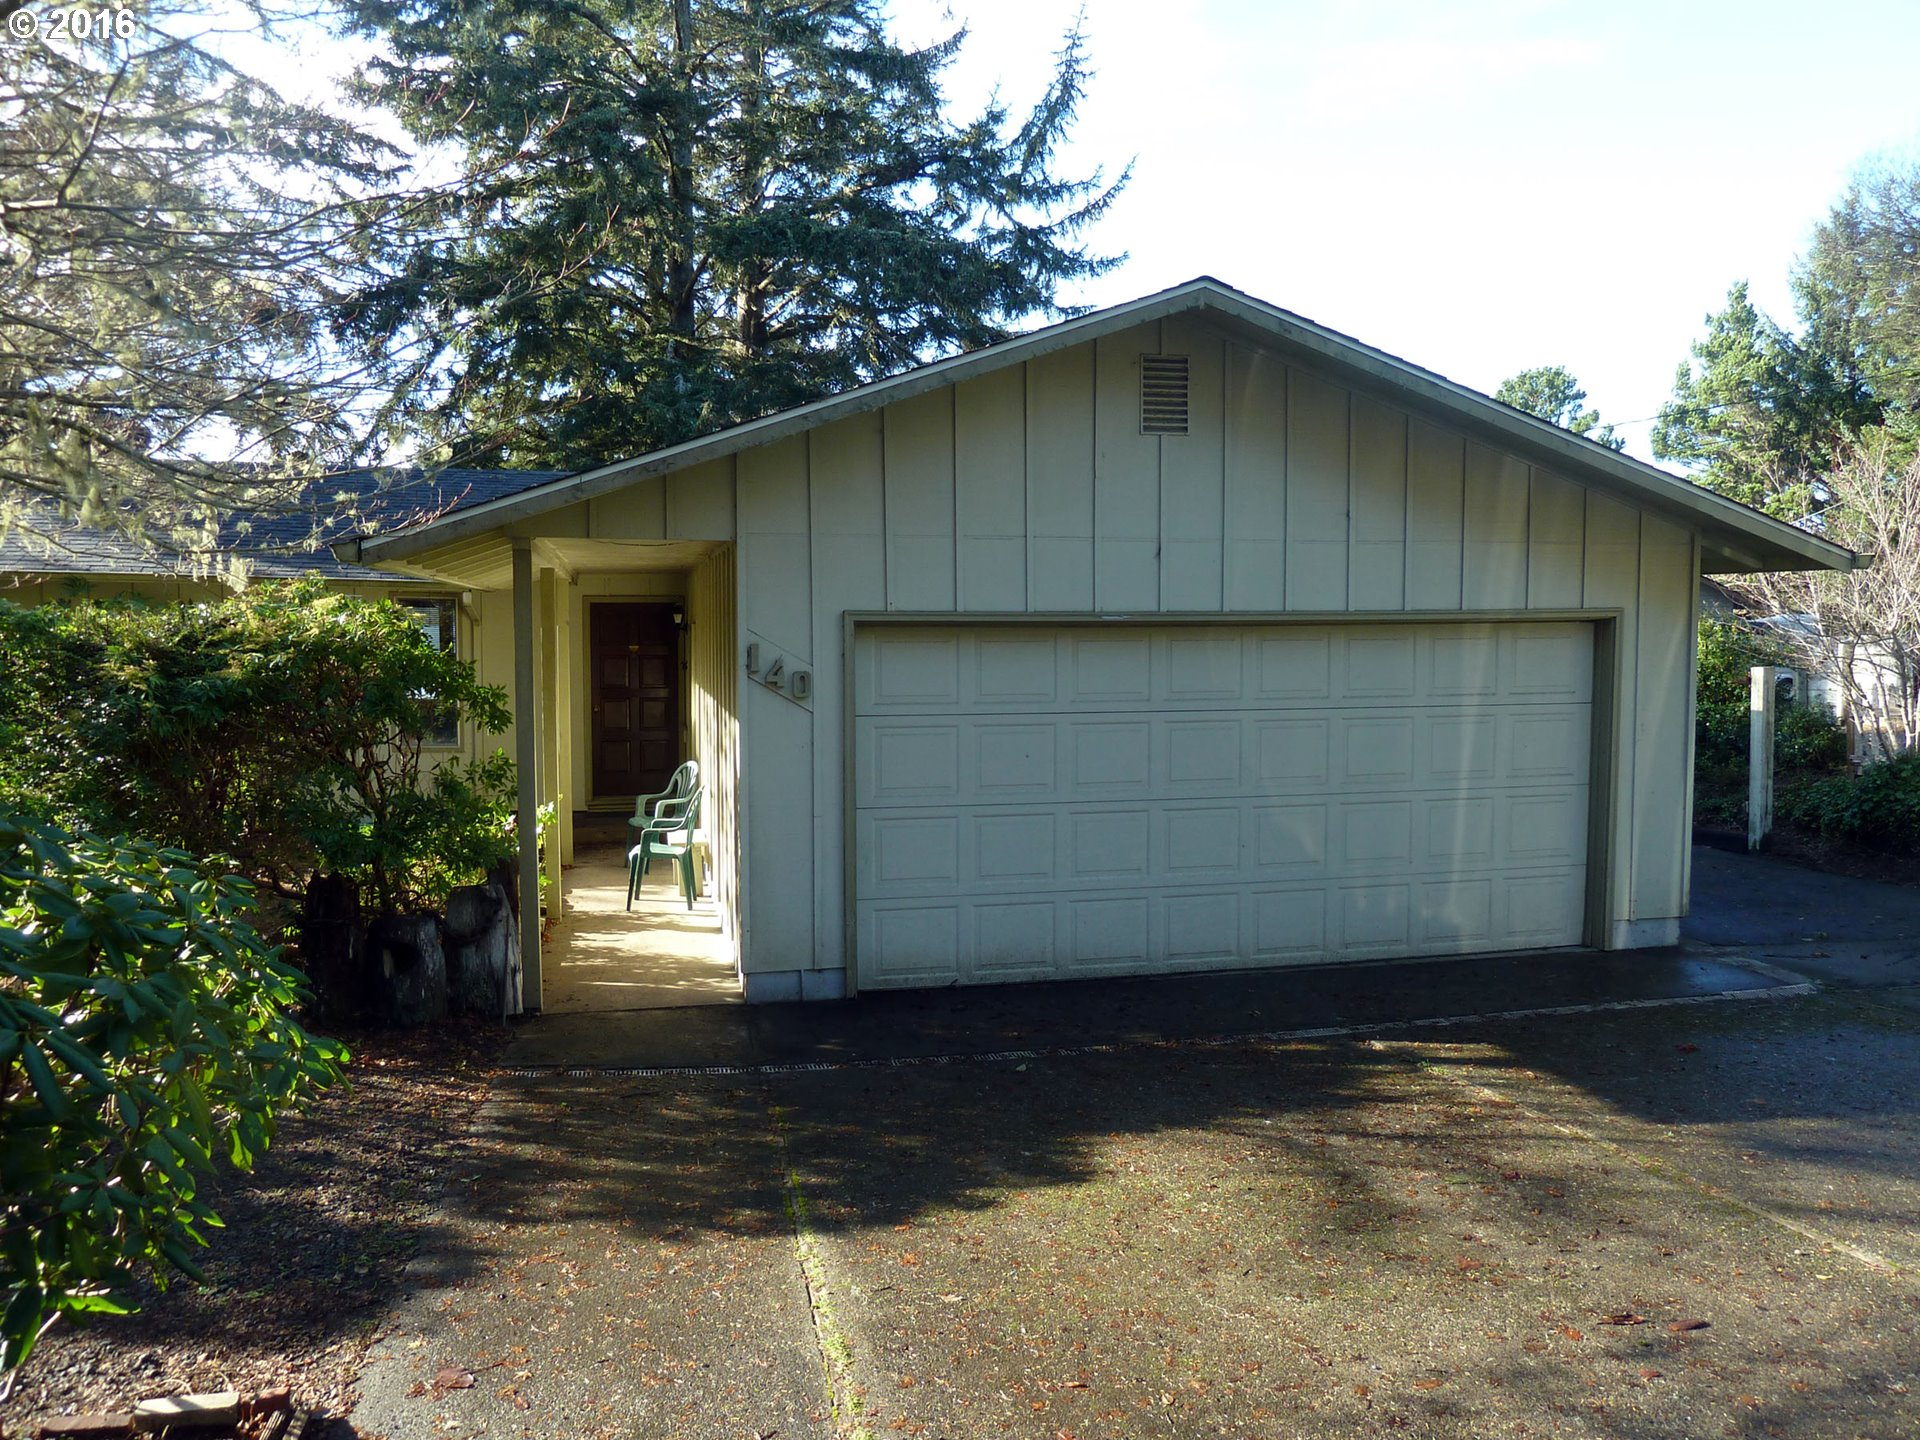 140 RHODODENDRON DR, Florence, OR 97439